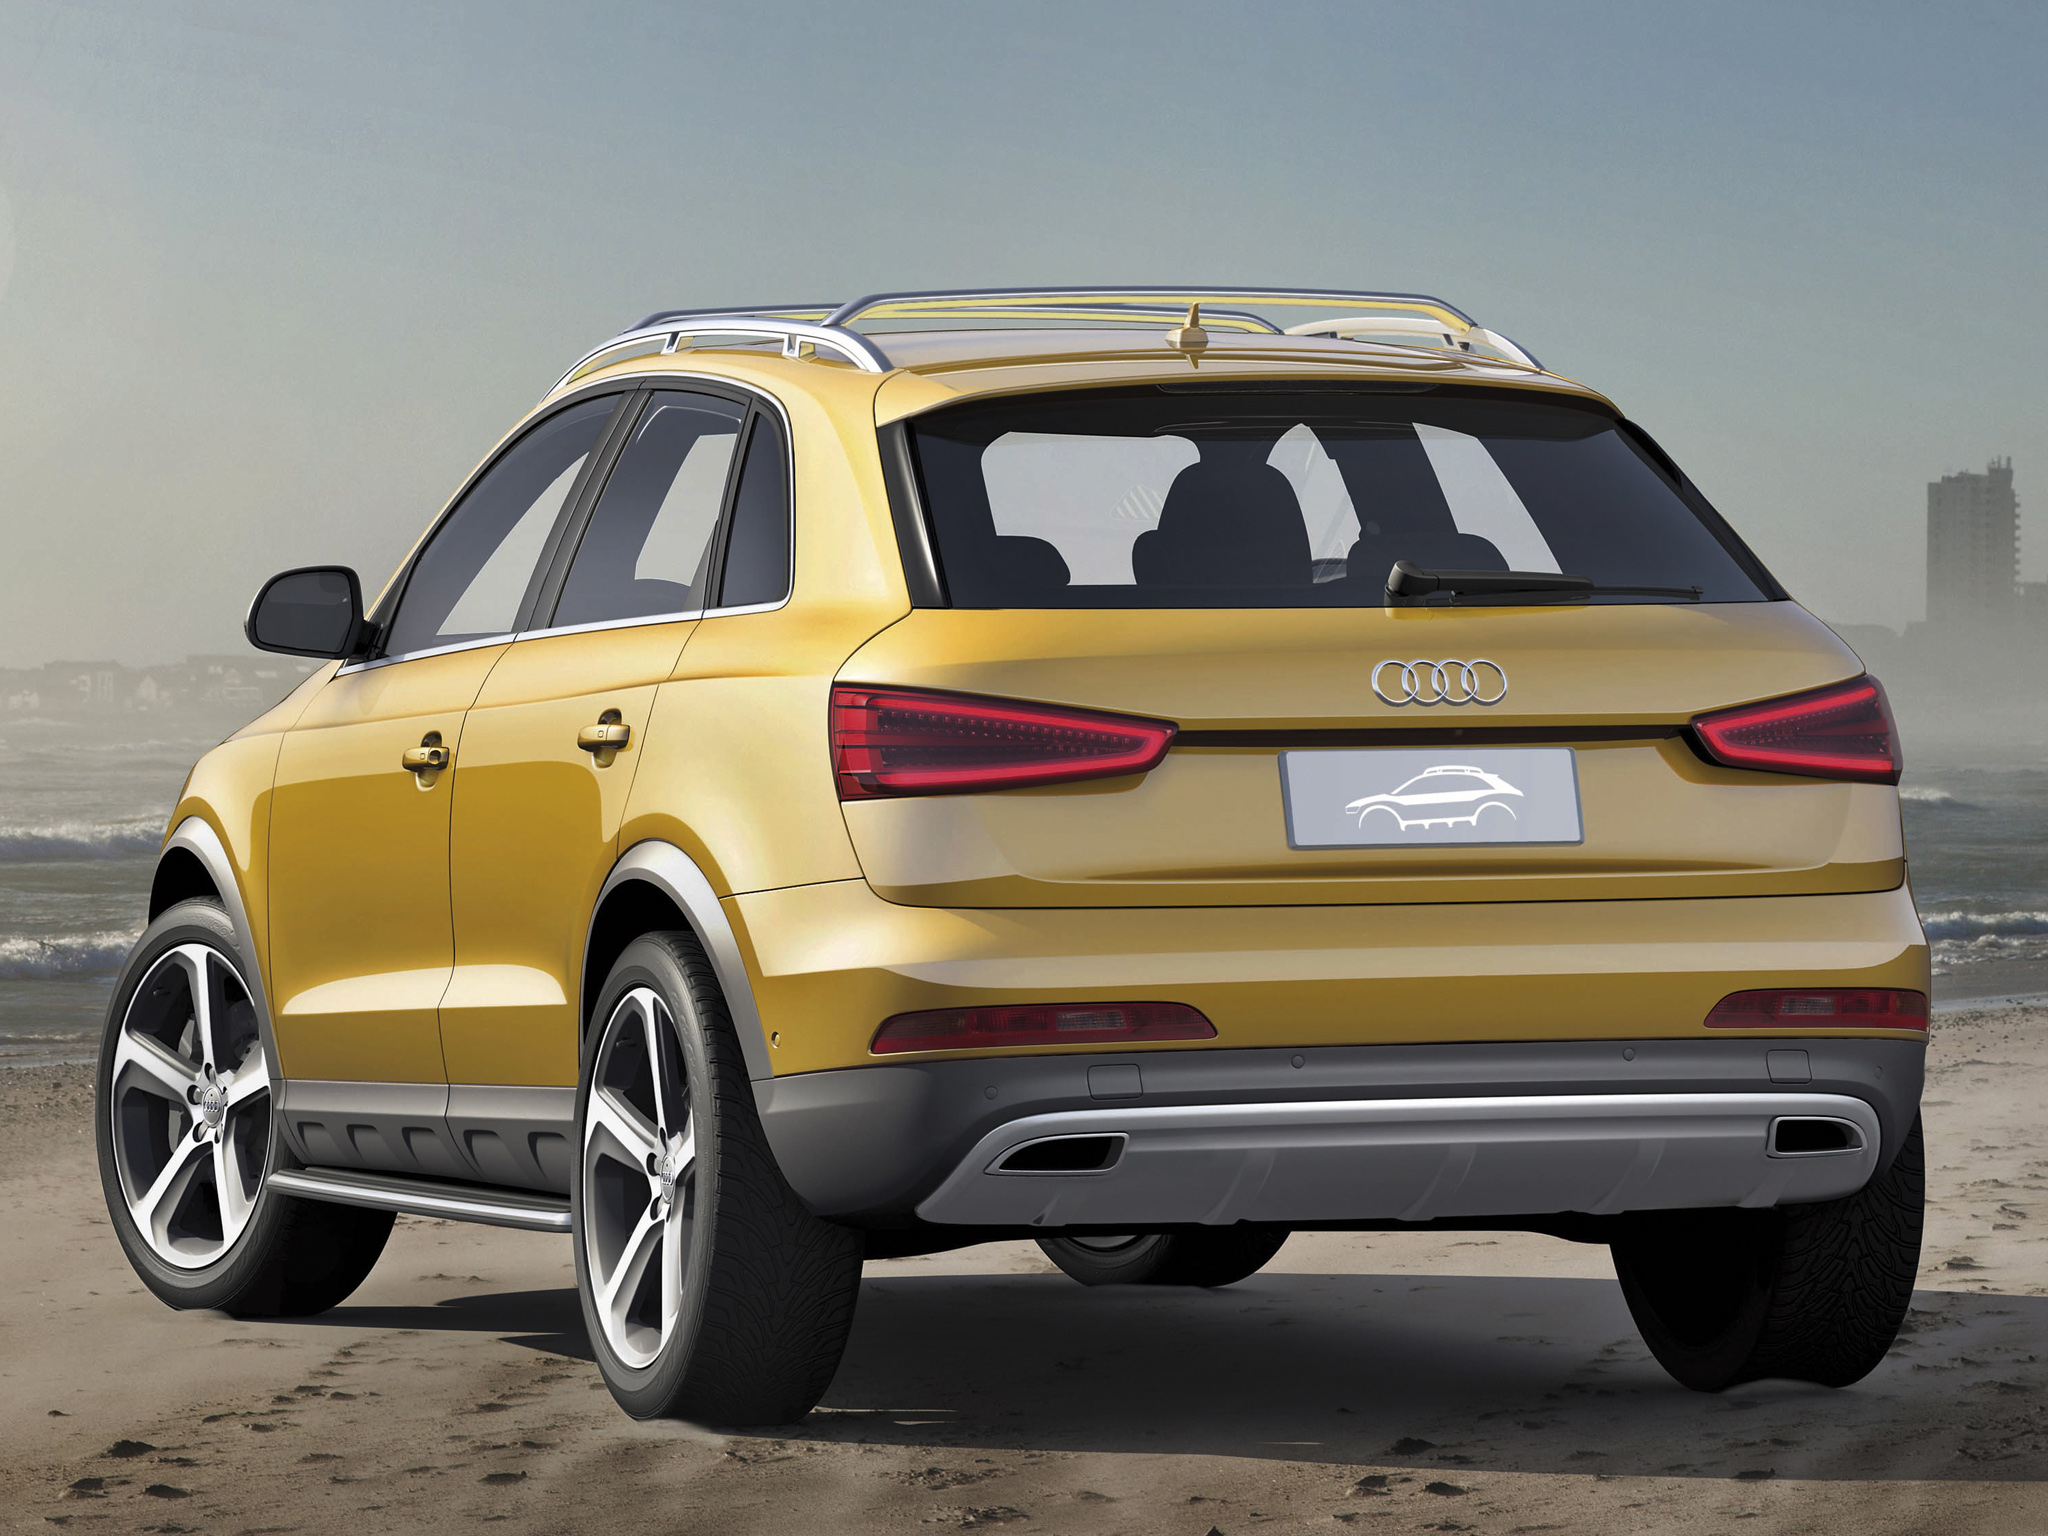 2019 Audi Q3 Jinlong Yufeng Concept photo - 5